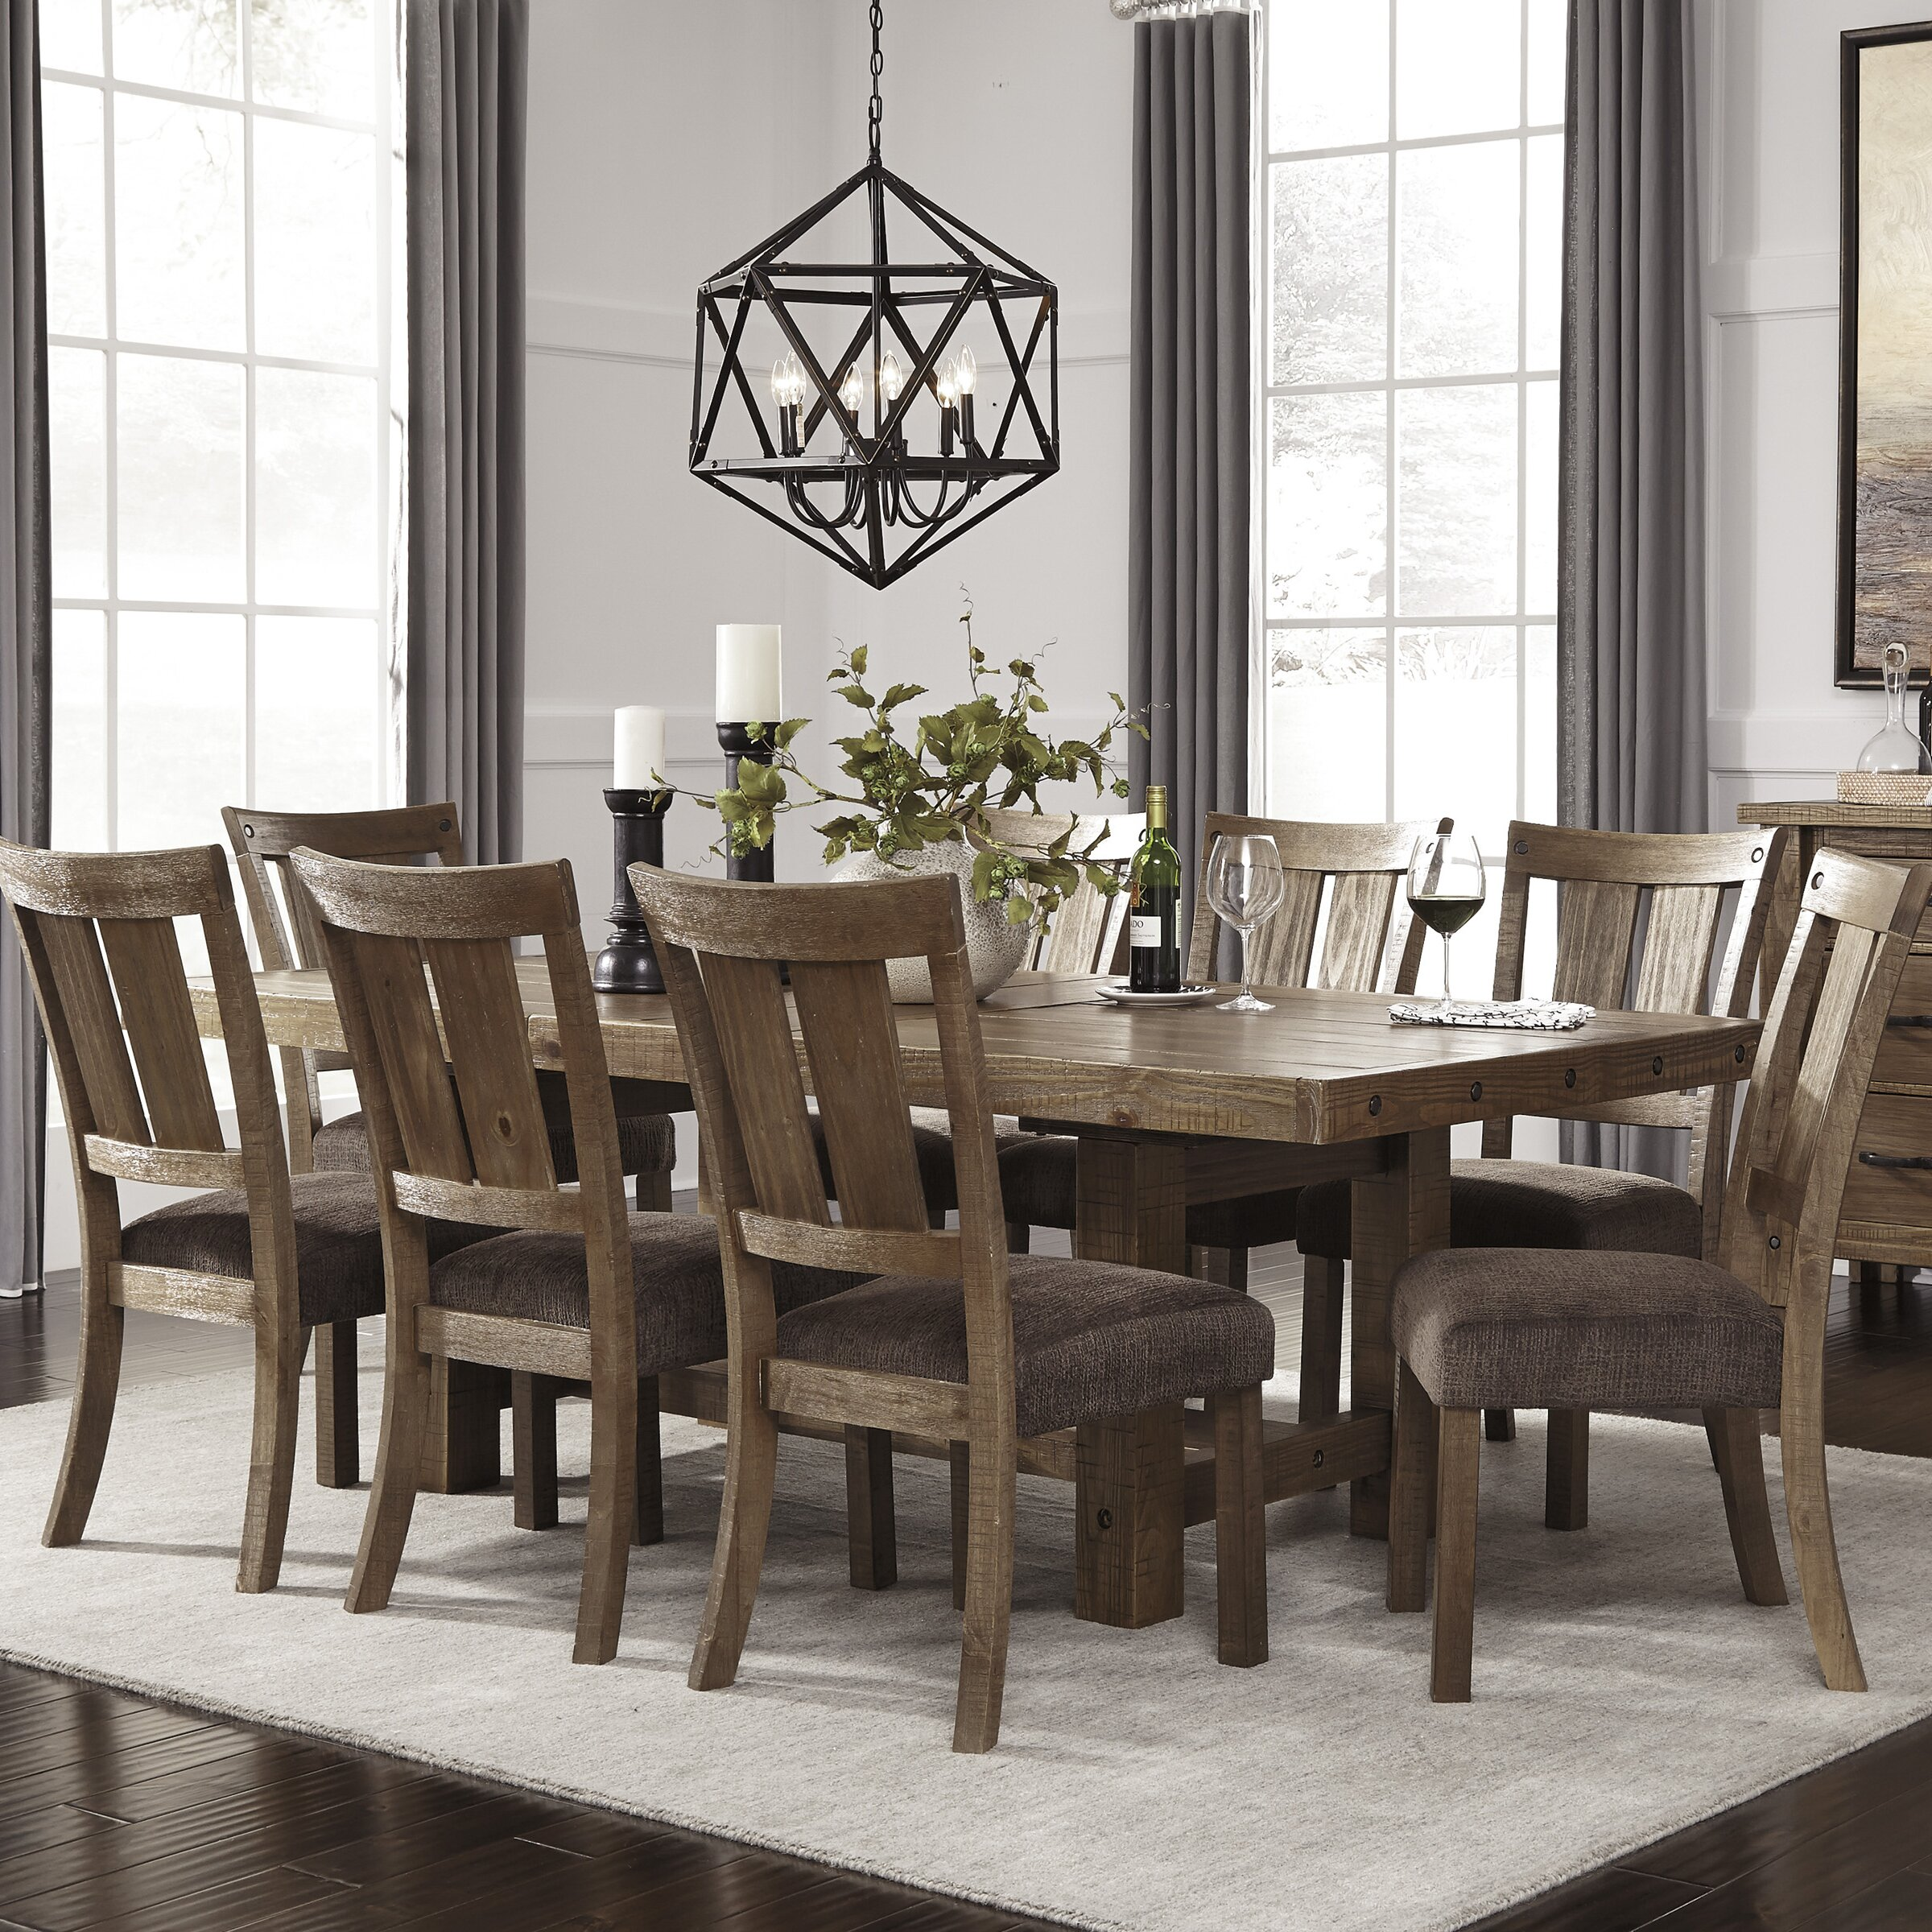 9 Piece Formal Dining Room Sets: Signature Design By Ashley 9 Piece Dining Set & Reviews